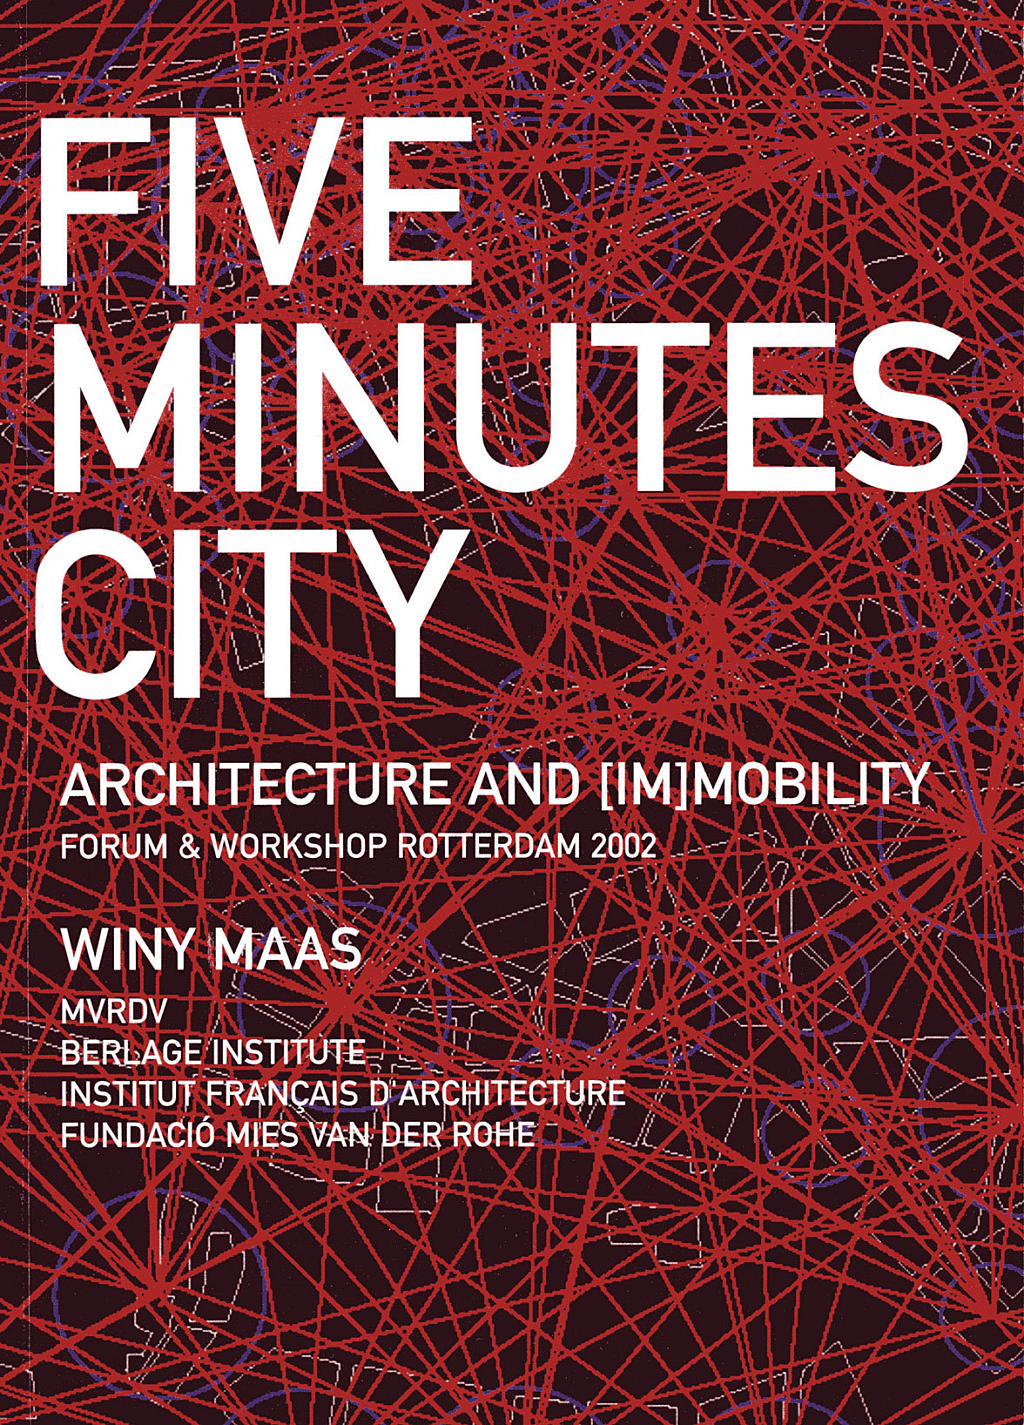 MVRDV, Five minute city.